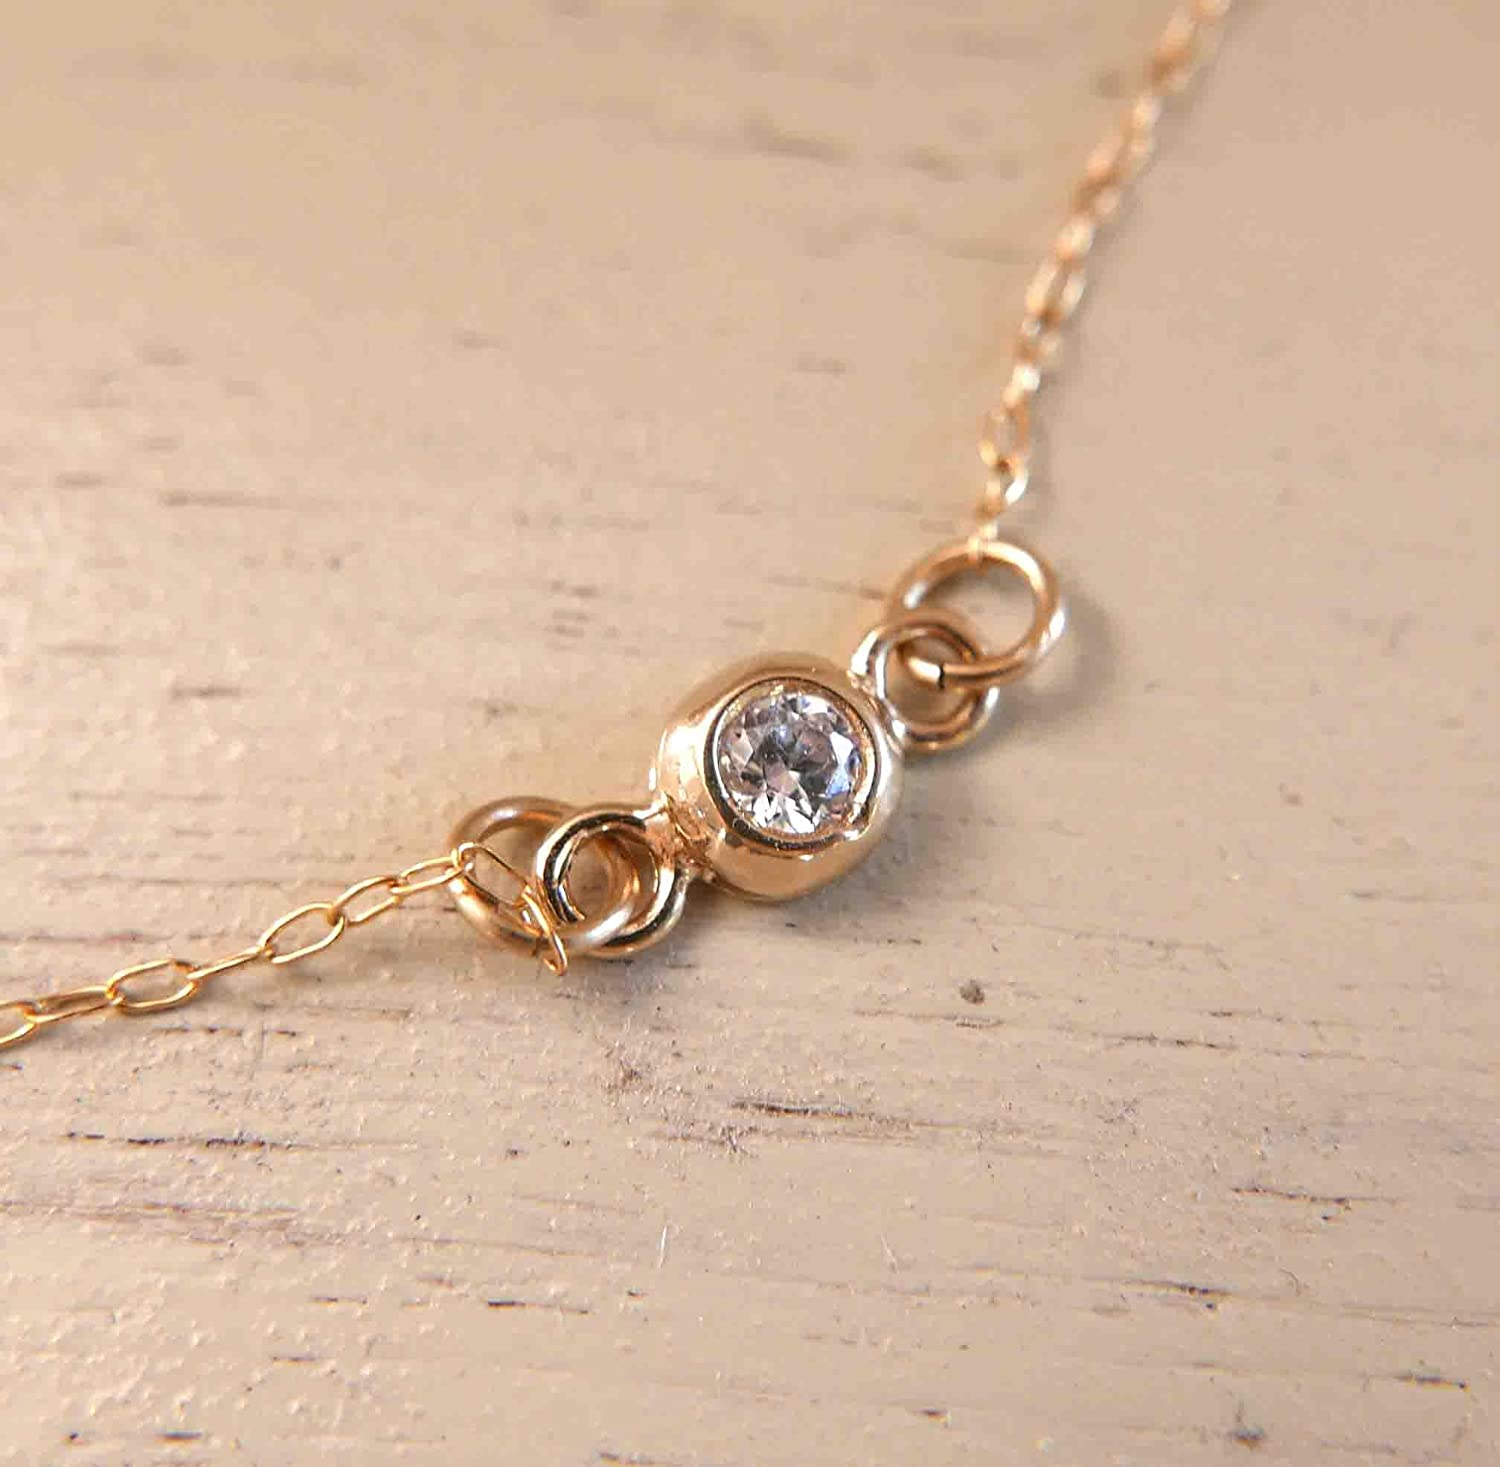 Gold Choker Necklace - Gold Solitaire Necklace - Gold Zircon Necklace - Simple Delicate Necklace - Gold Collar Necklace - Dainty Choker